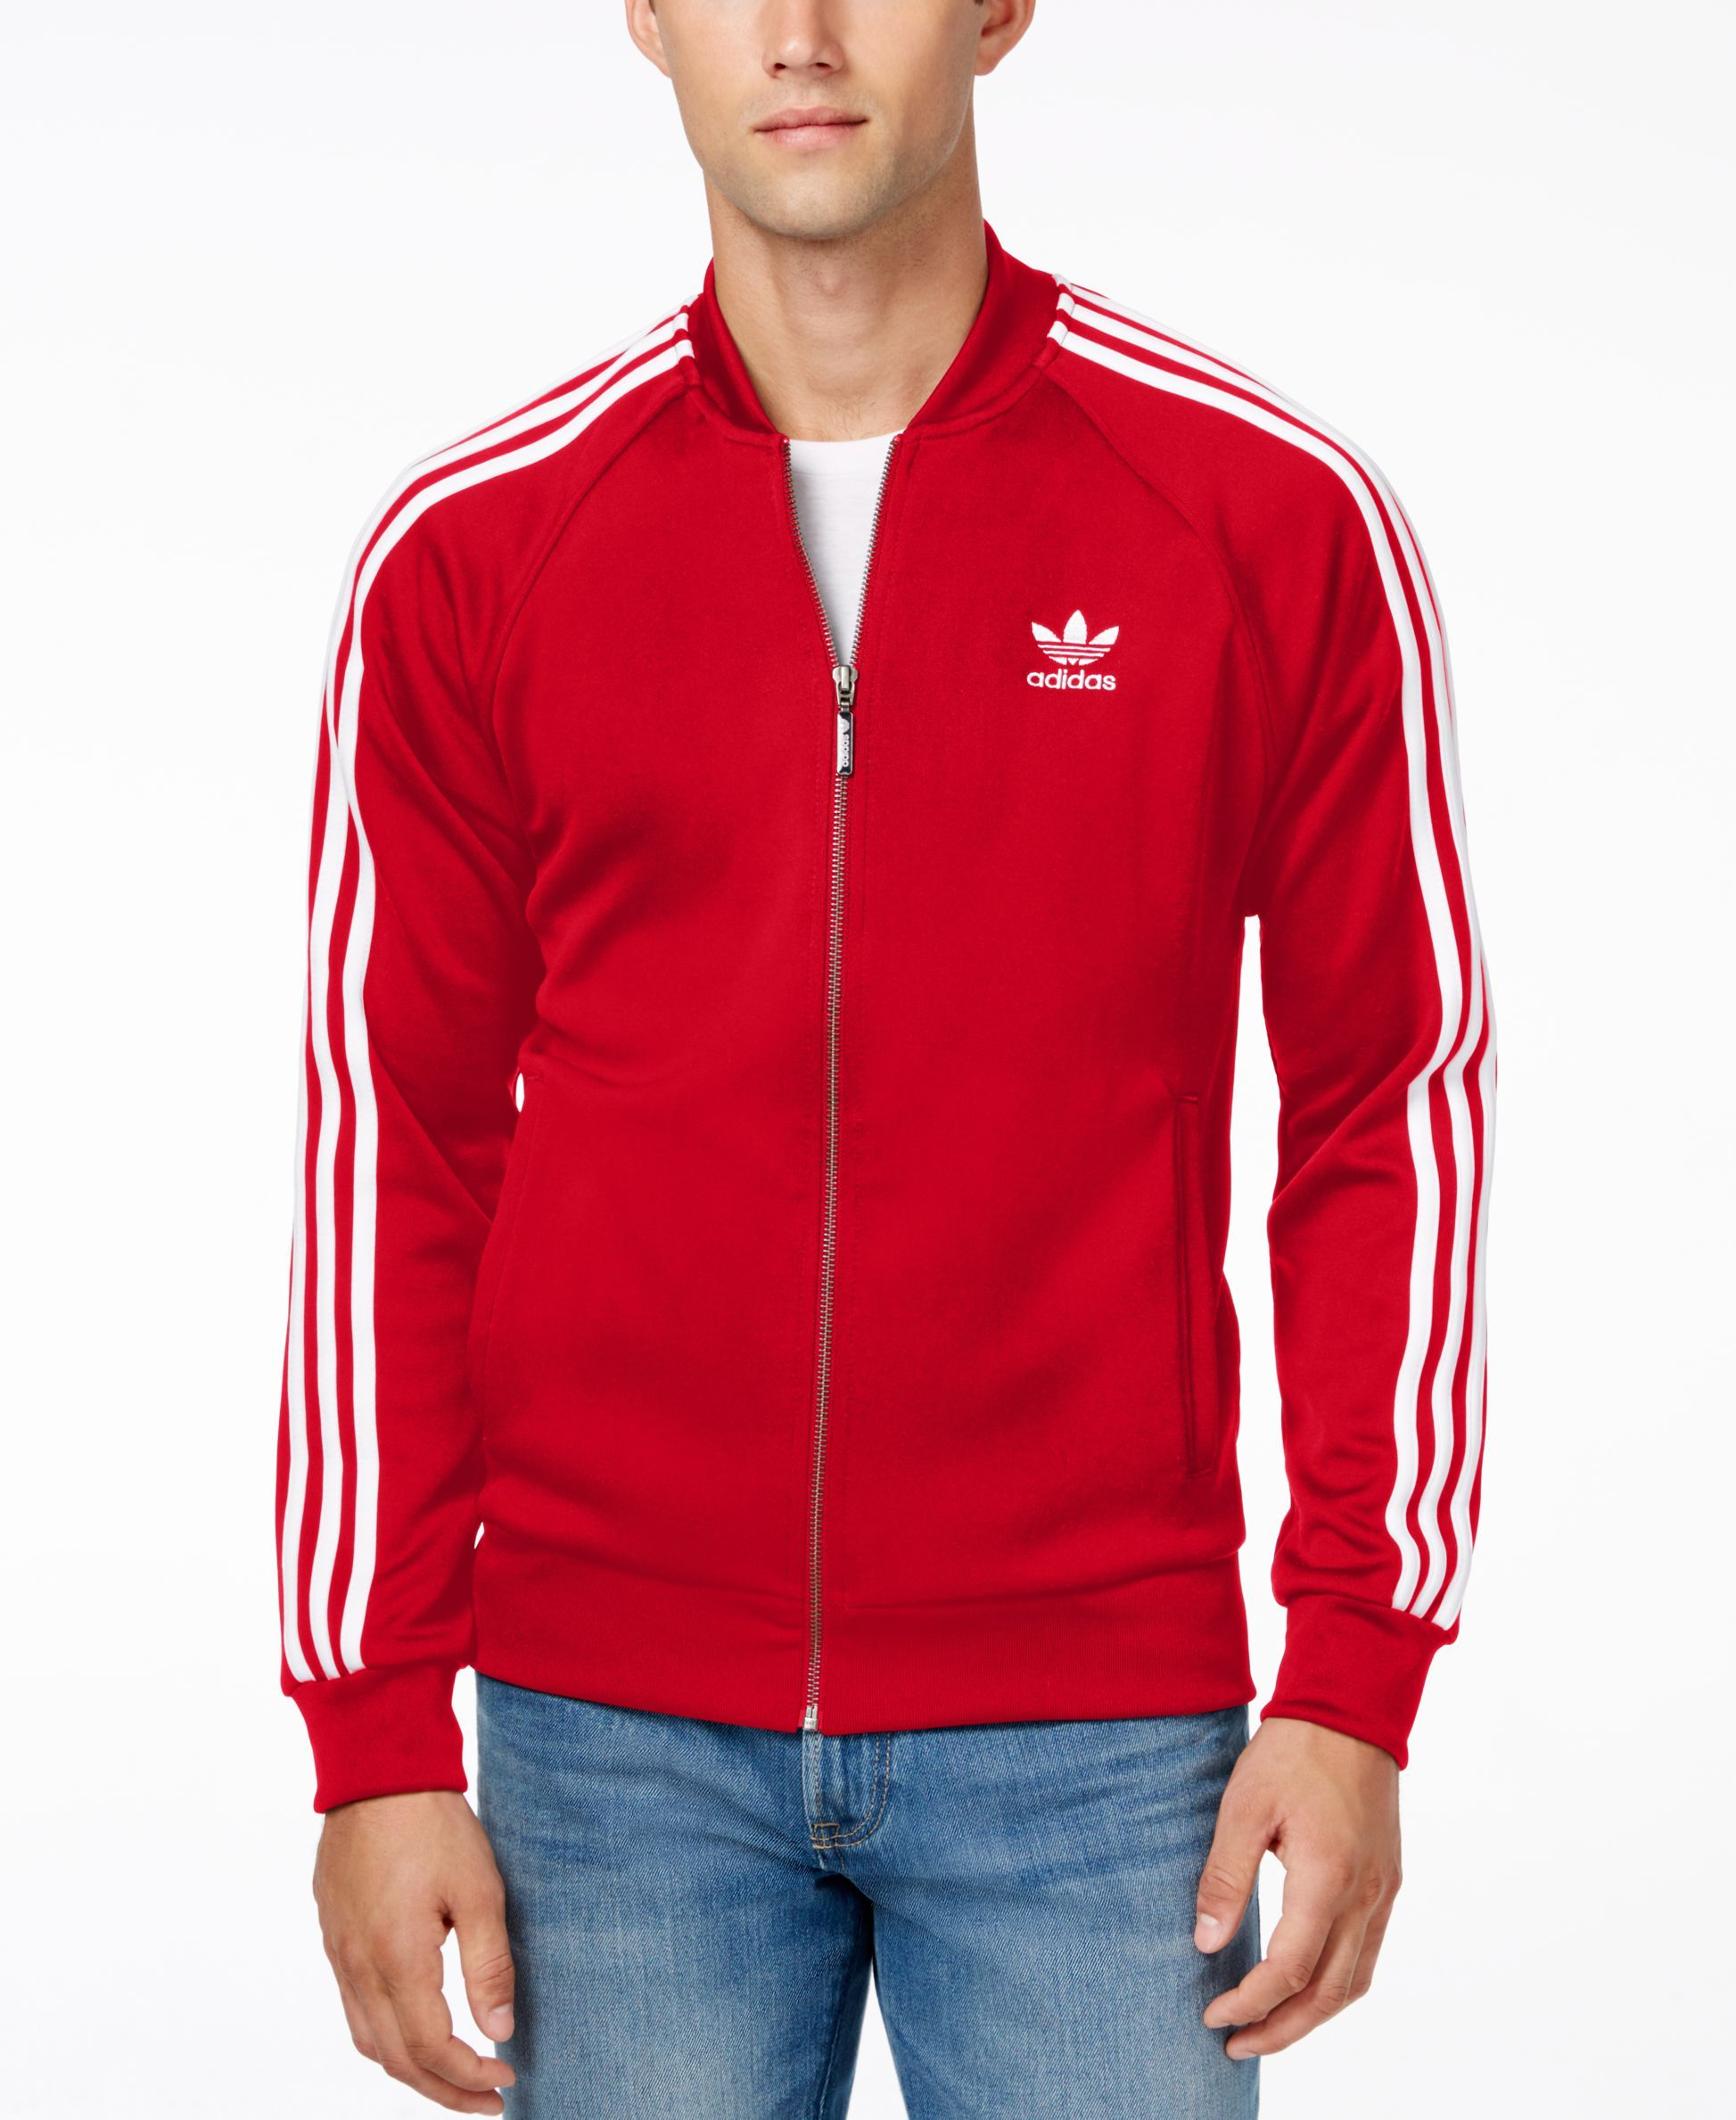 Warm up or cool down in classic style and comfort with this